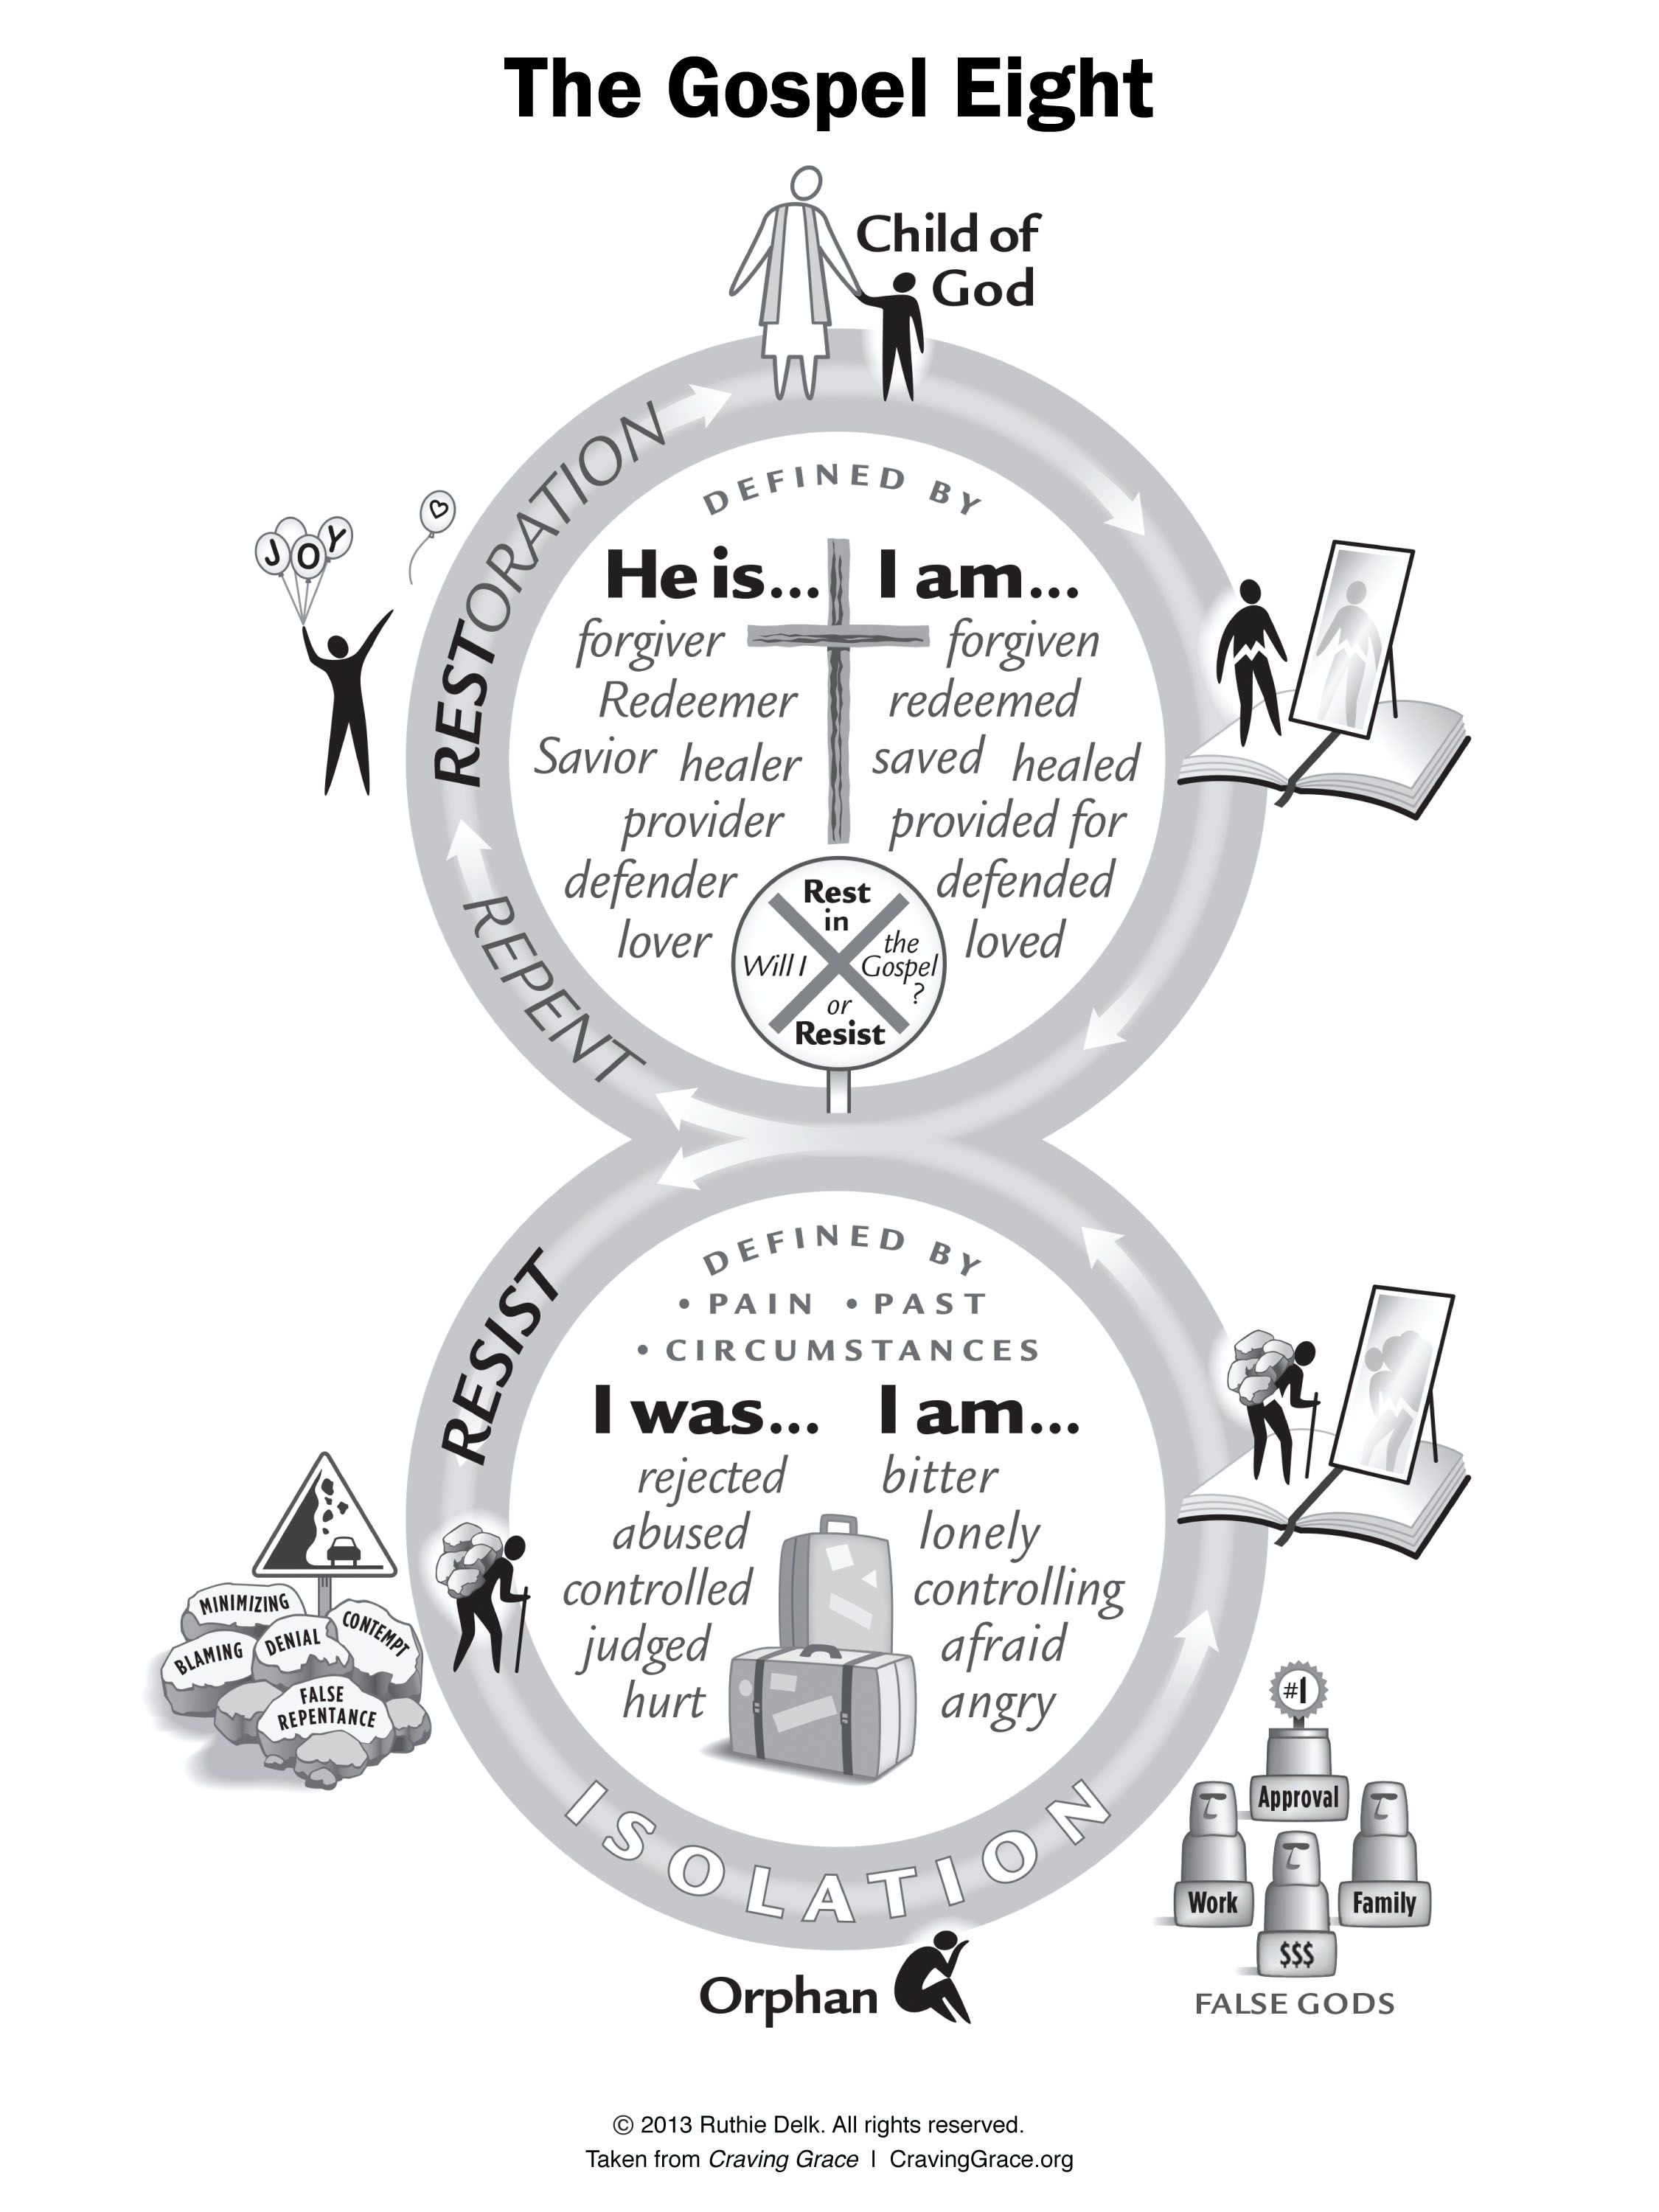 The Gospel Eight Diagram Has Evolved Over The Years As A